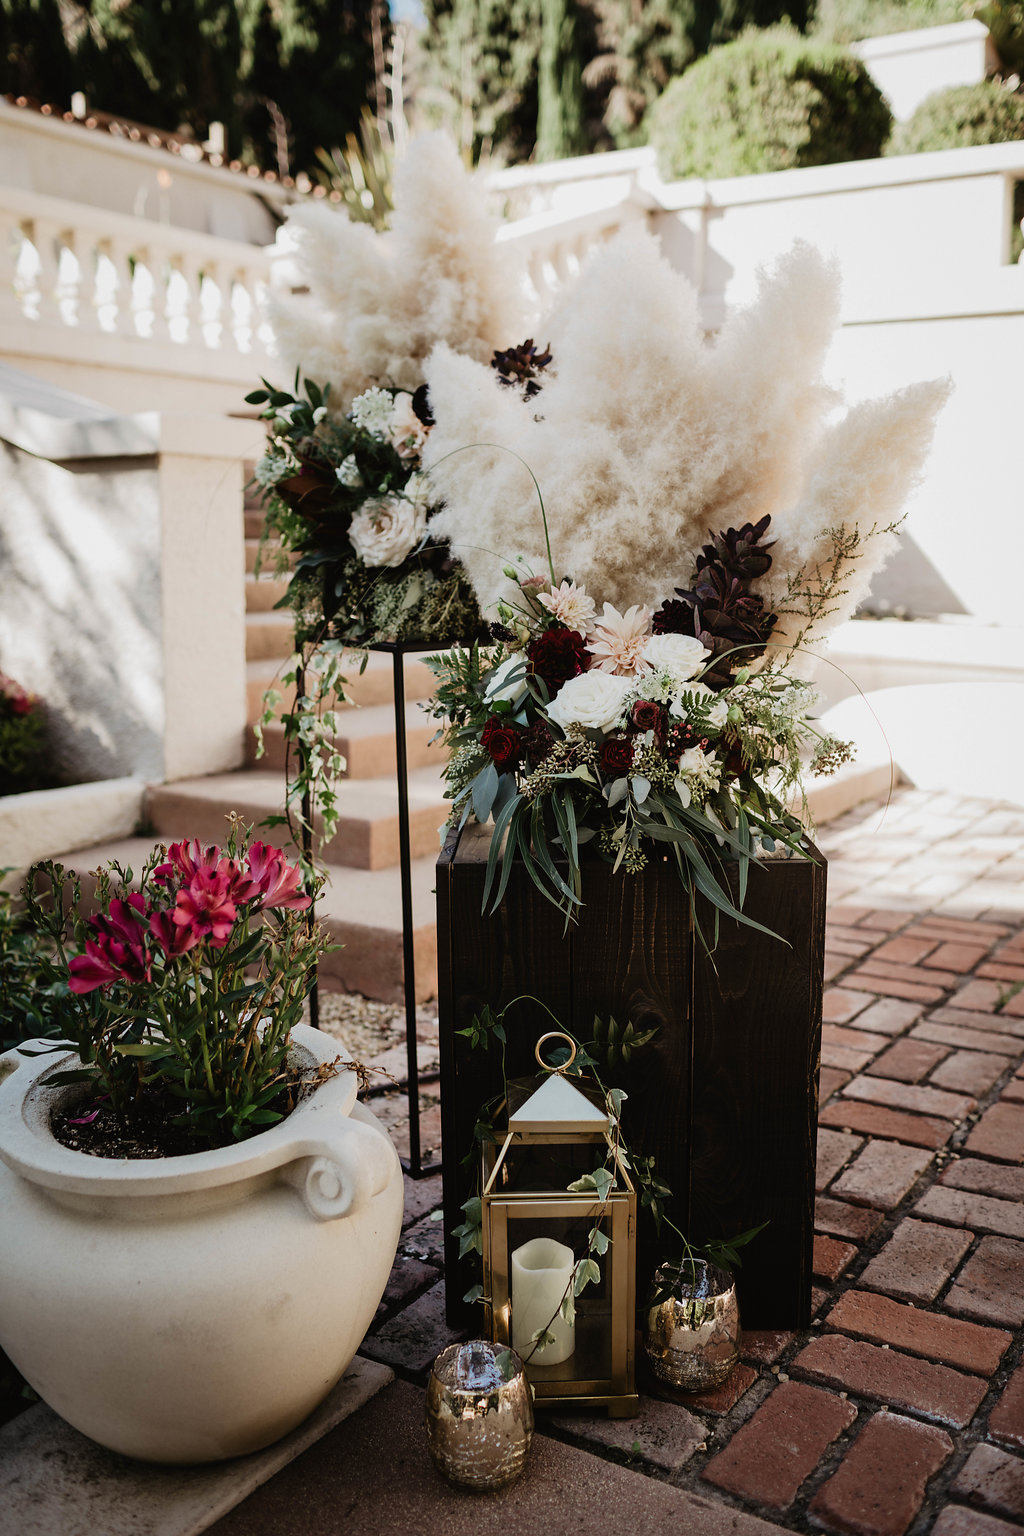 Burgundy and Blush, Pampas Grass and Dahlia Altar Arrangement- Wattles Mansion, Hollywood, CA - Royal Bee Florals and Events